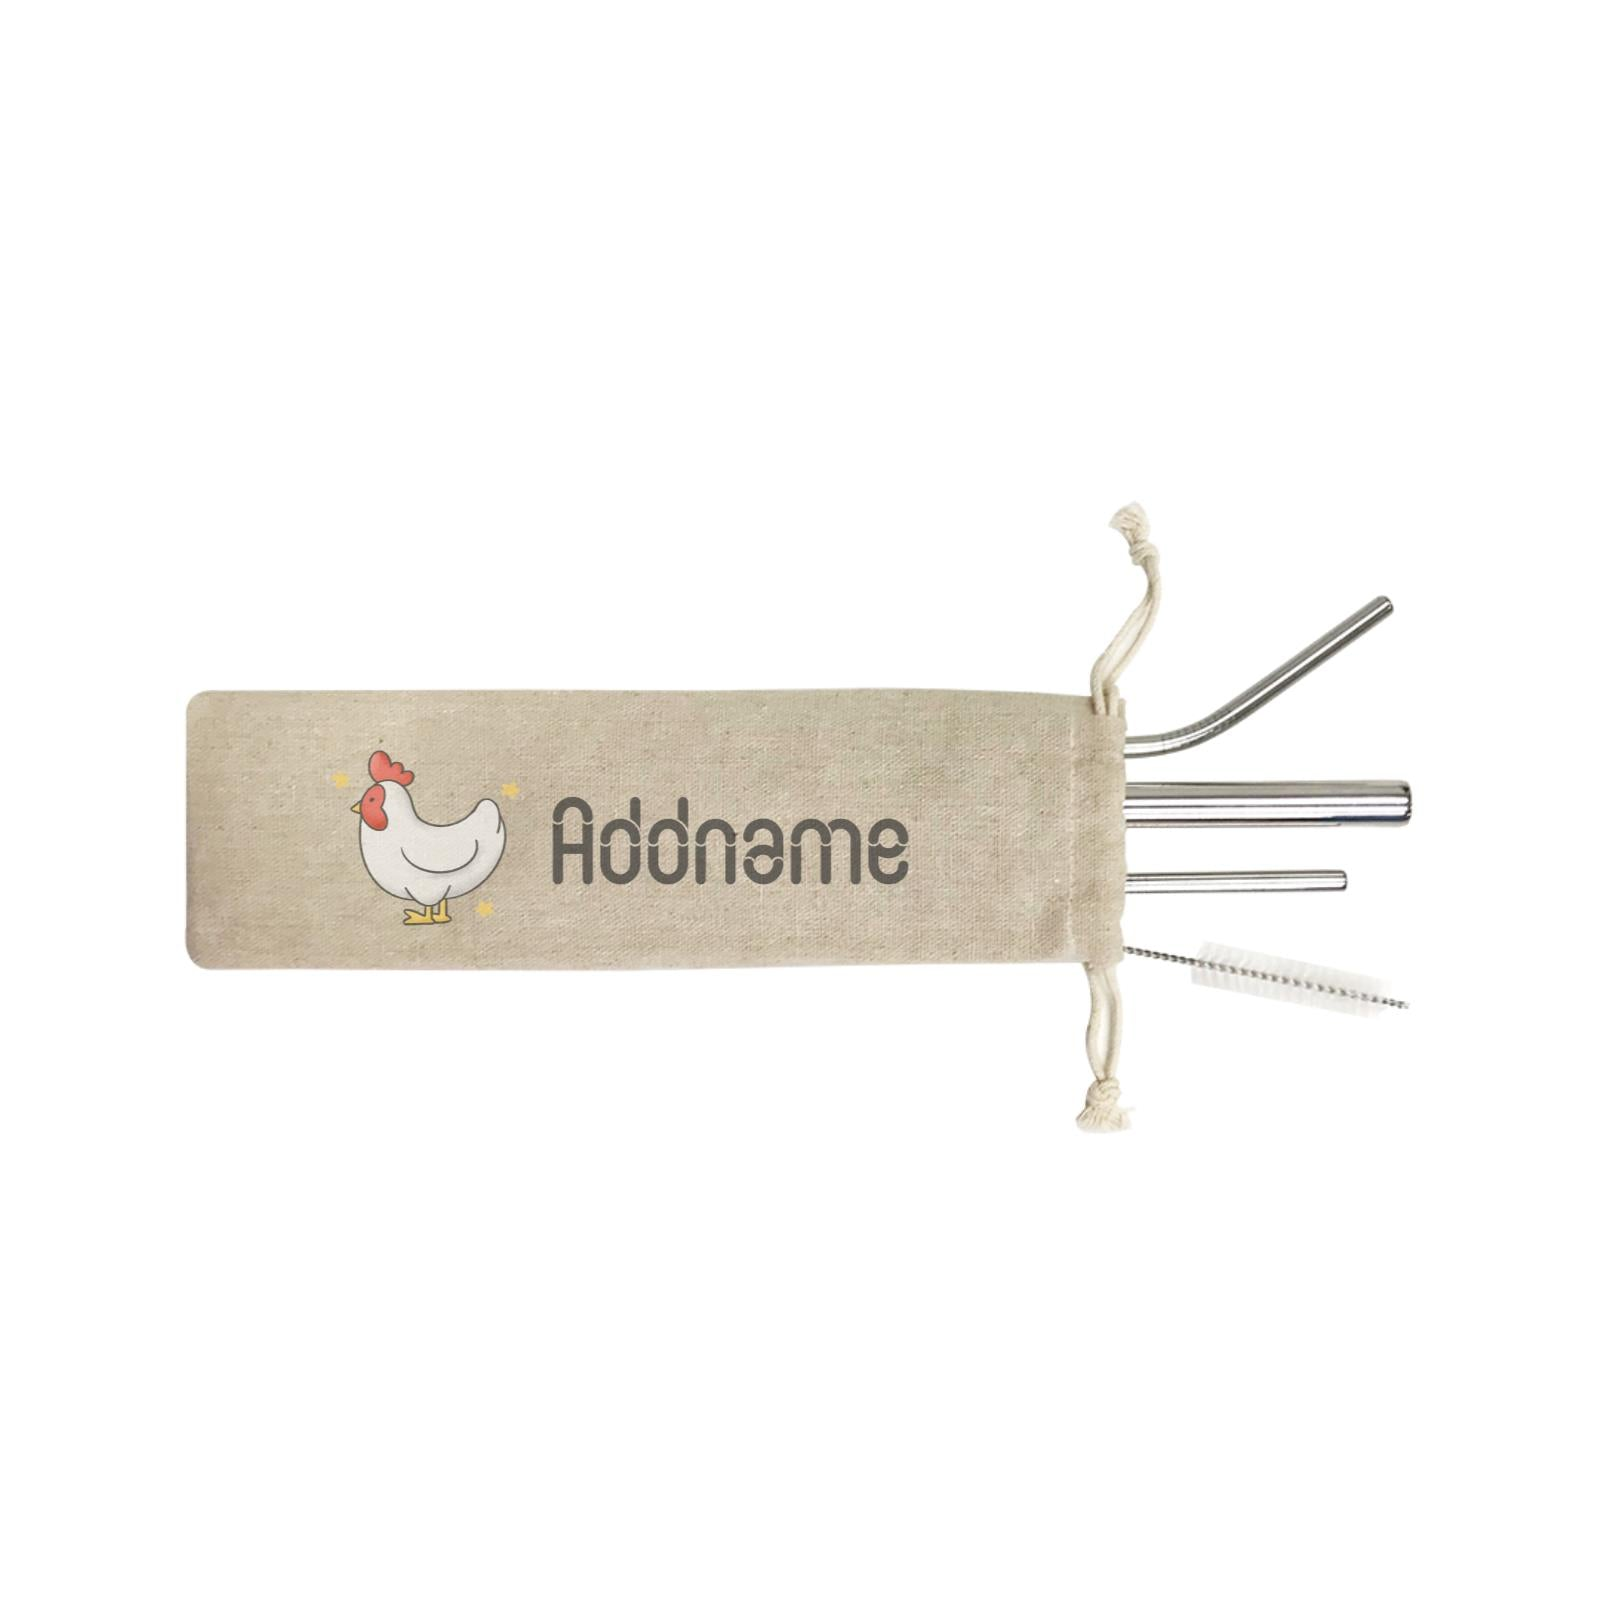 Cute Hand Drawn Style Rooster Addname ST SZP 4-In-1 Stainless Steel Straw Set in Satchel